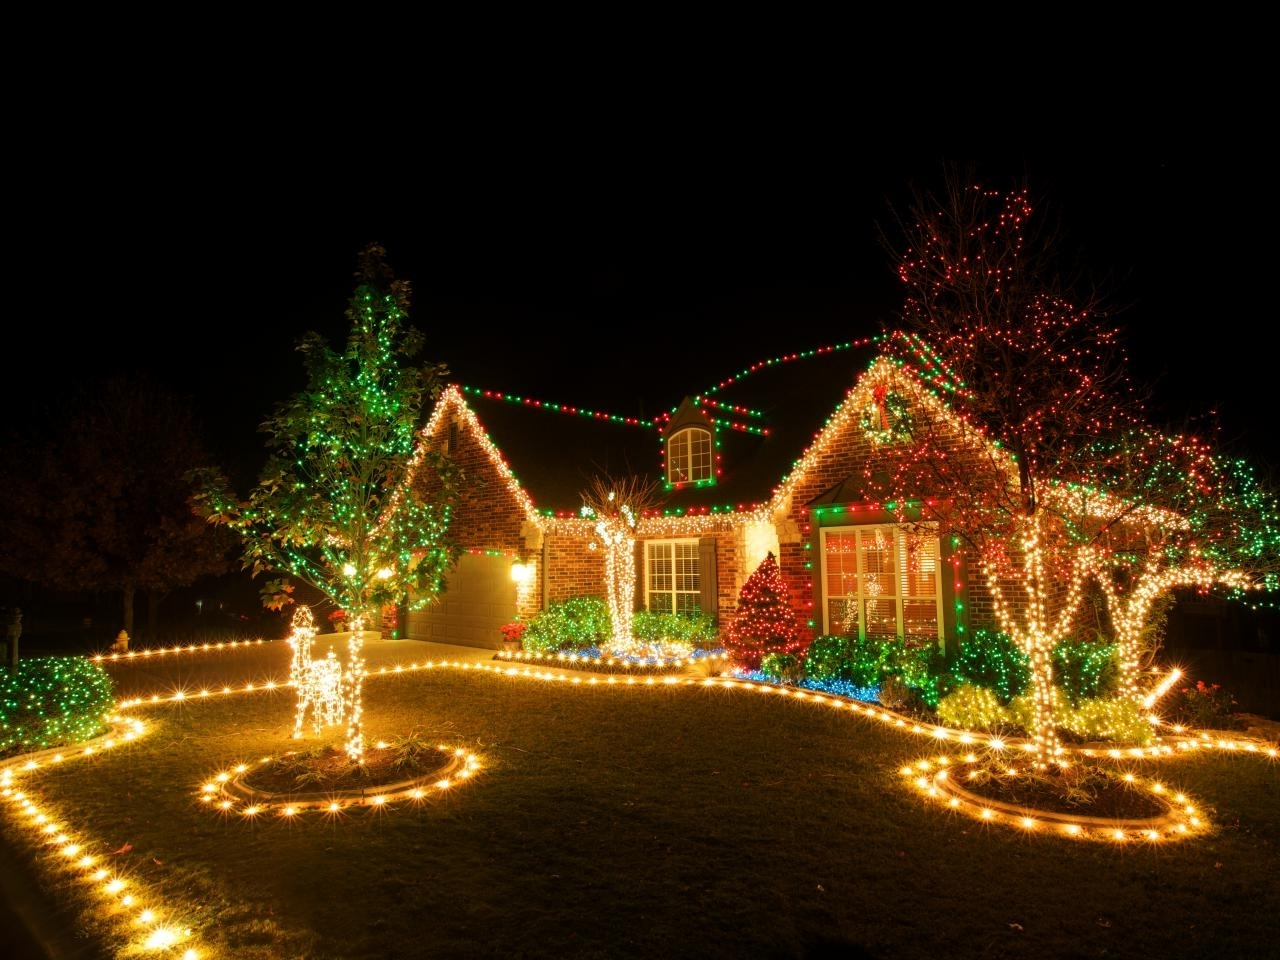 Hanging Outdoor Christmas Tree Lights With Regard To Most Up To Date White Outdoor Christmas Lights : 6 Tips For Outdoor Christmas Lights (View 10 of 20)